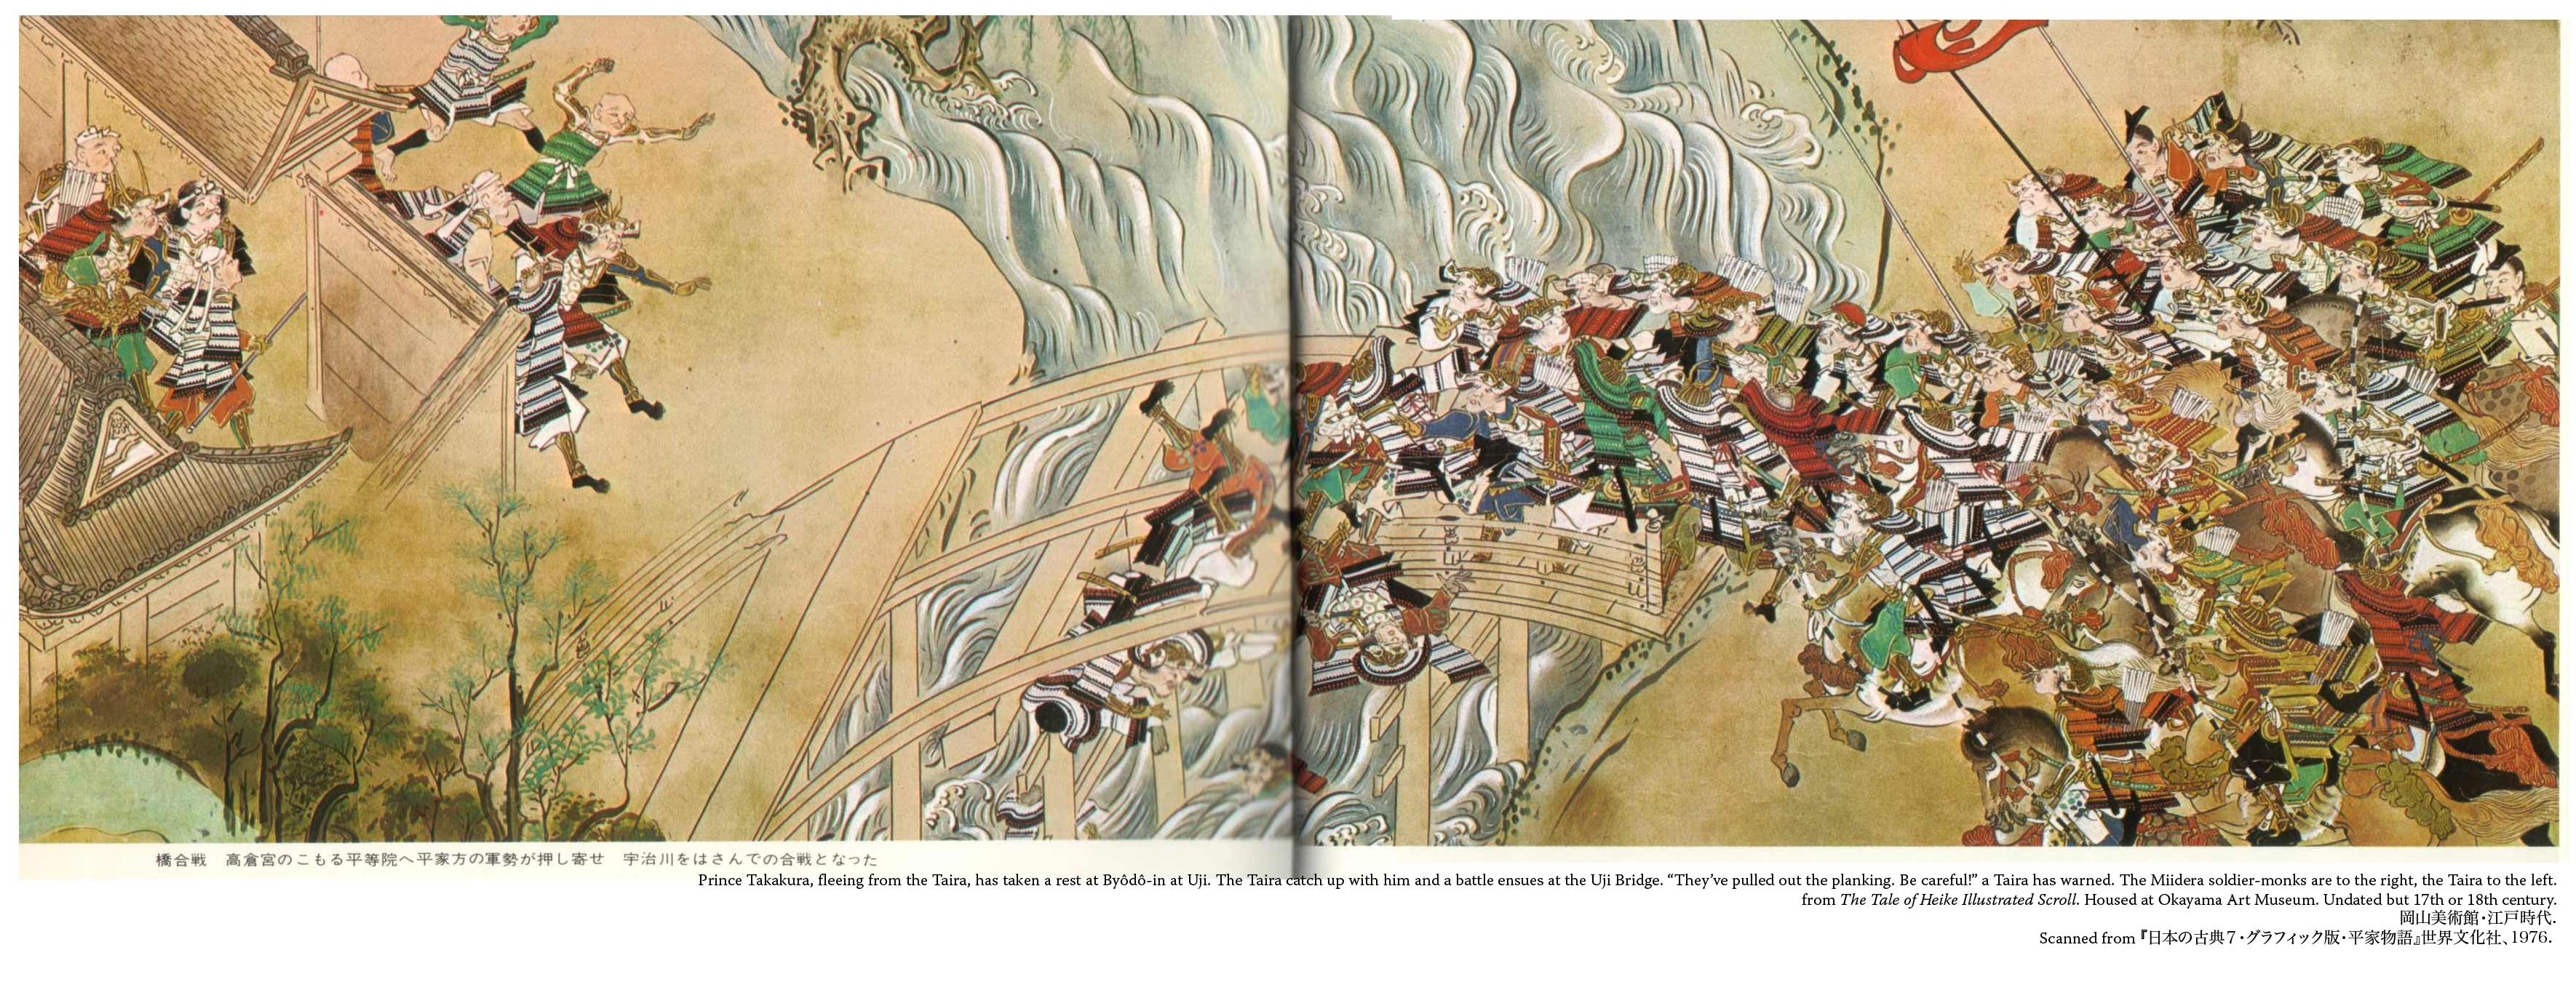 a literary analysis of the tale of heike The tale of the heike (平家物語 heike monogatari) is an epic account compiled prior to 1330 of the struggle between the taira clan and minamoto clan for control of japan at the end of the 12th century in the genpei war (1180-1185.